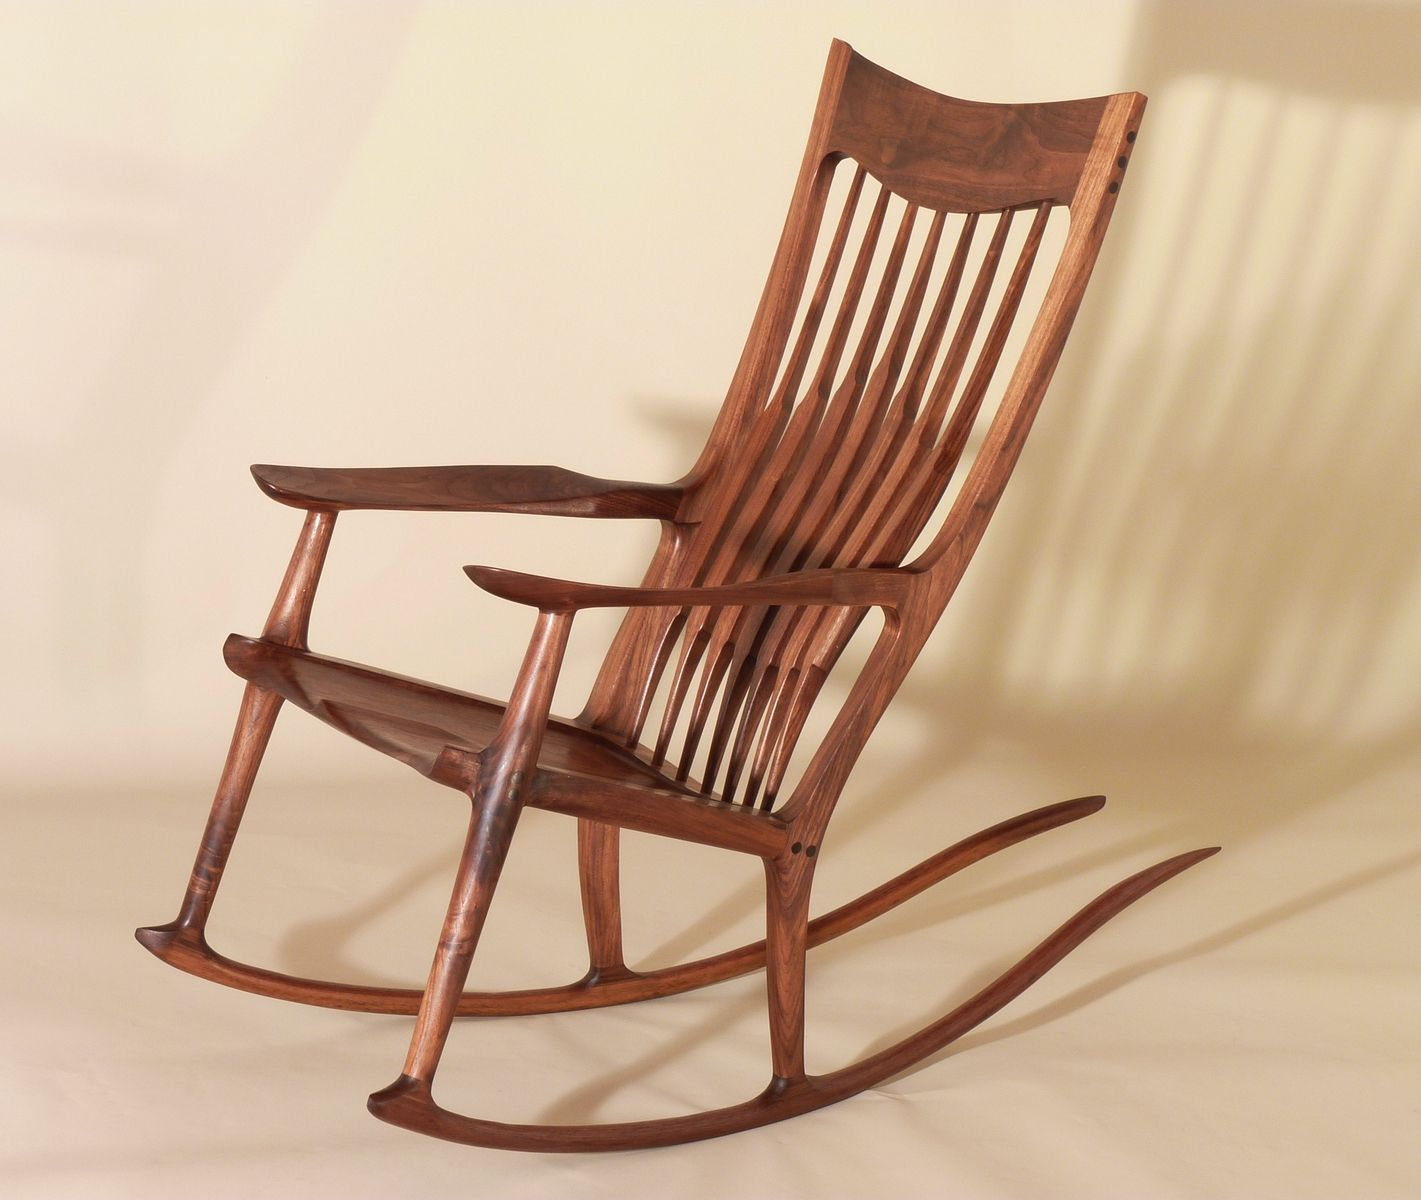 Hand crafted sam maloof style rocking chairs by j blok What are chairs made of